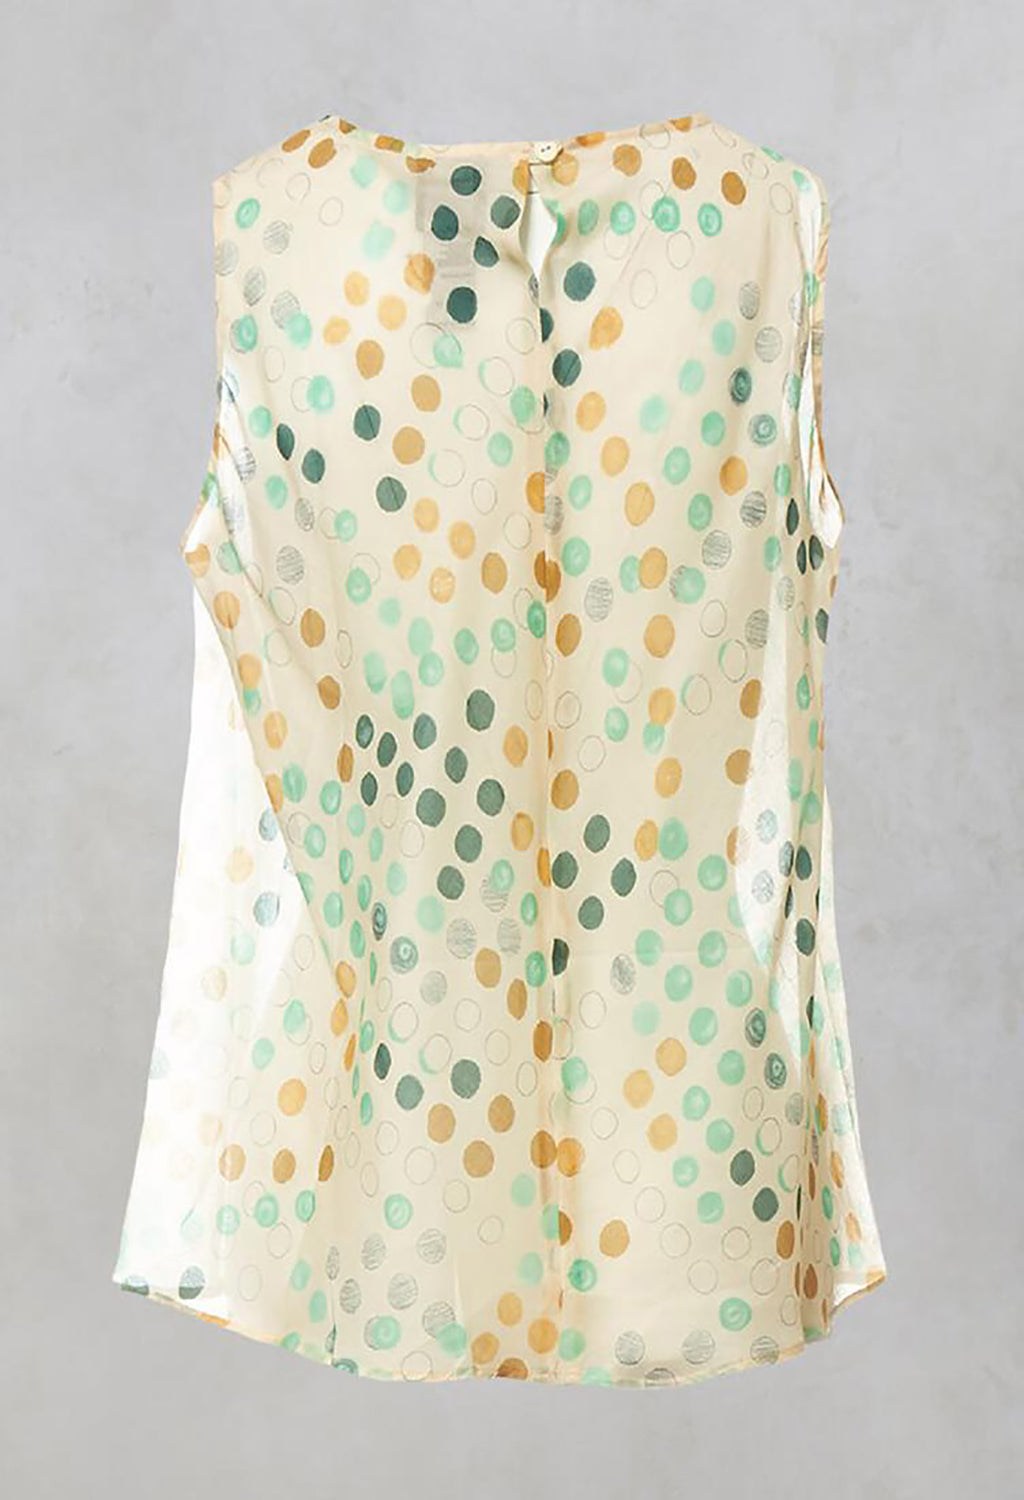 Cotton Sleeveless Top with Gathered Front with Cream and Green Spots